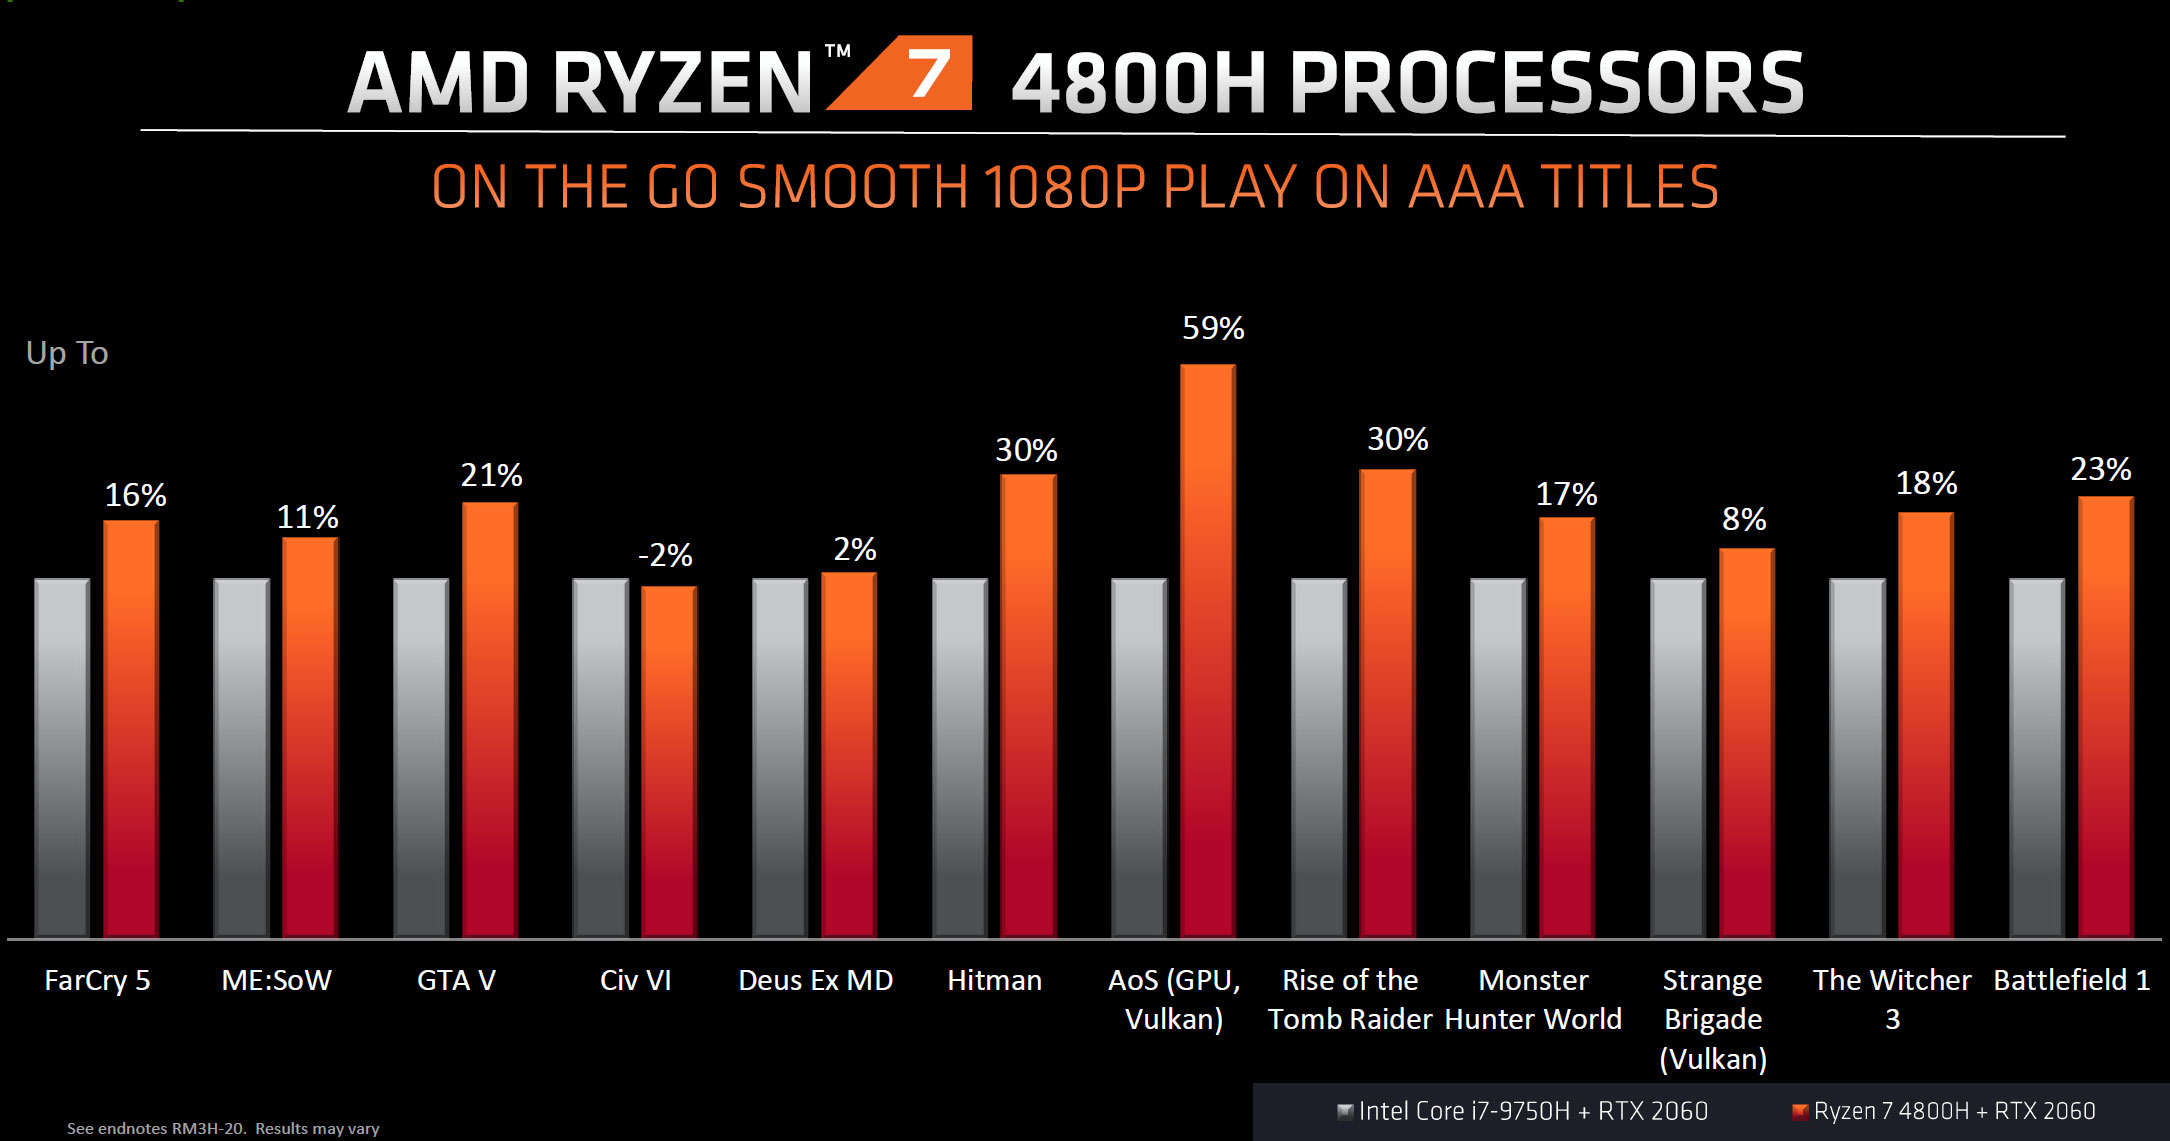 AMD Ryzen 7 4800H productivity benchmarks